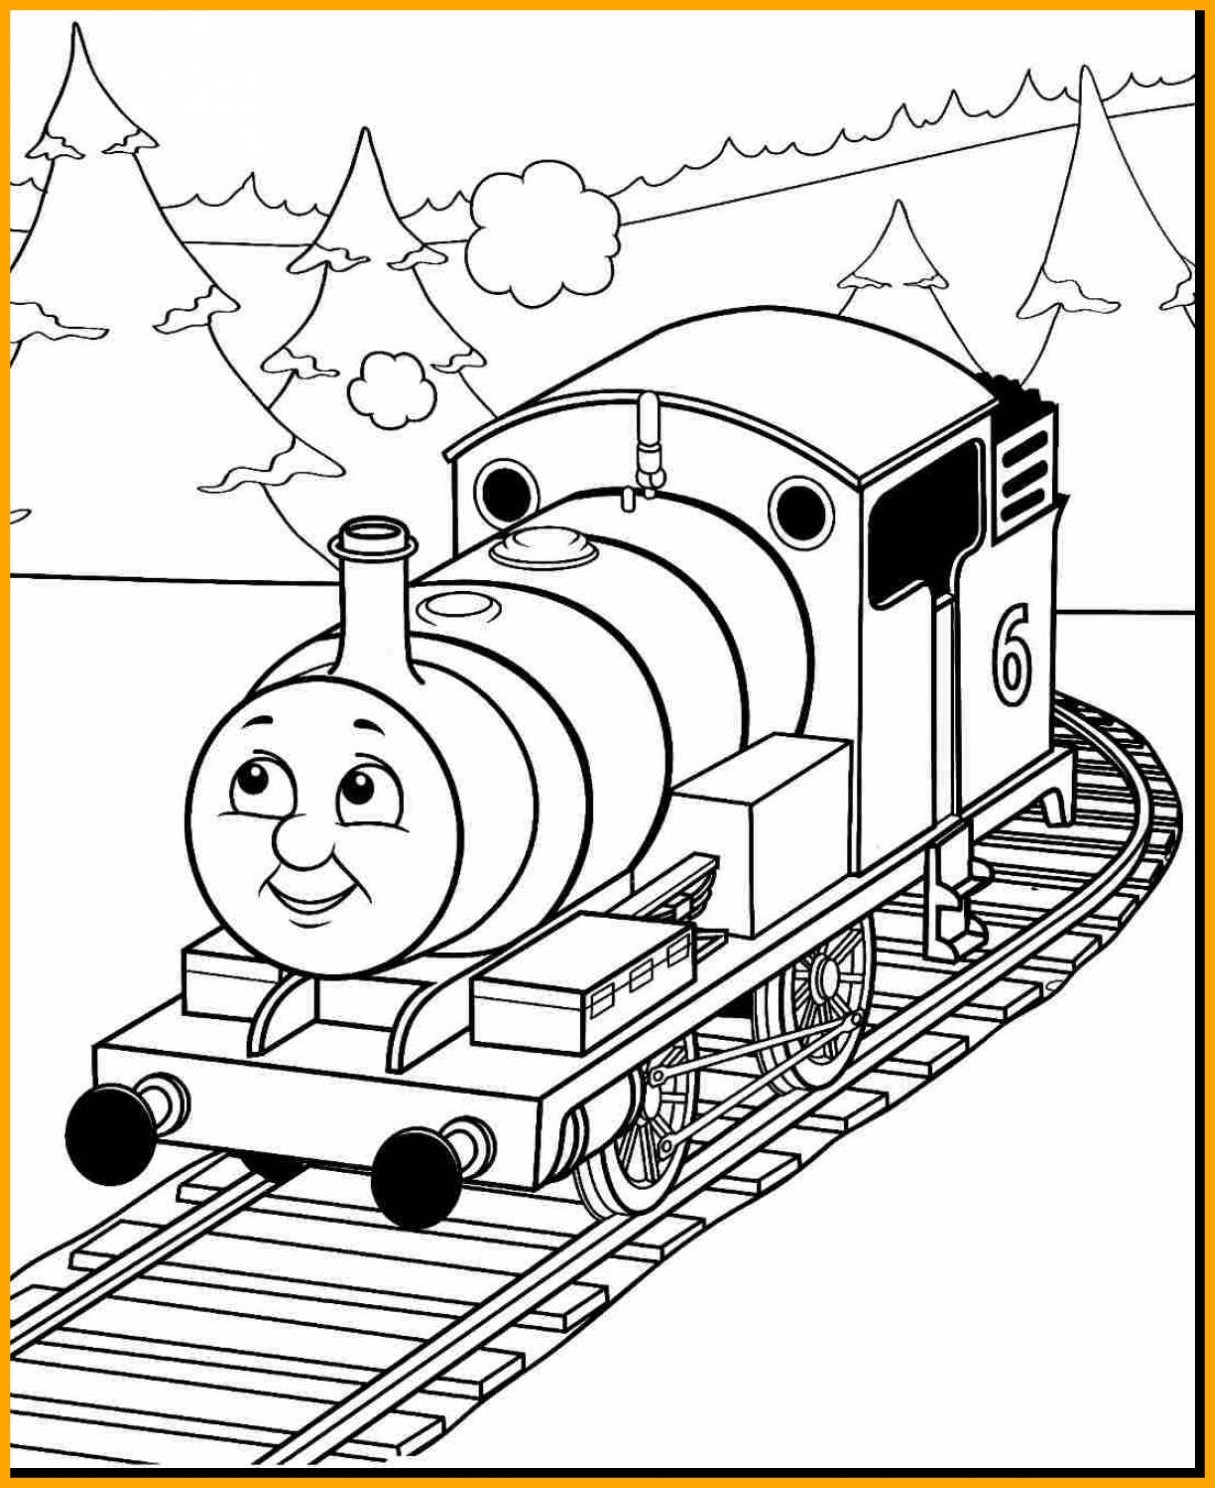 Train Coloring Pages Hiro The Train Coloring Pages Best Coloring Pages Collection